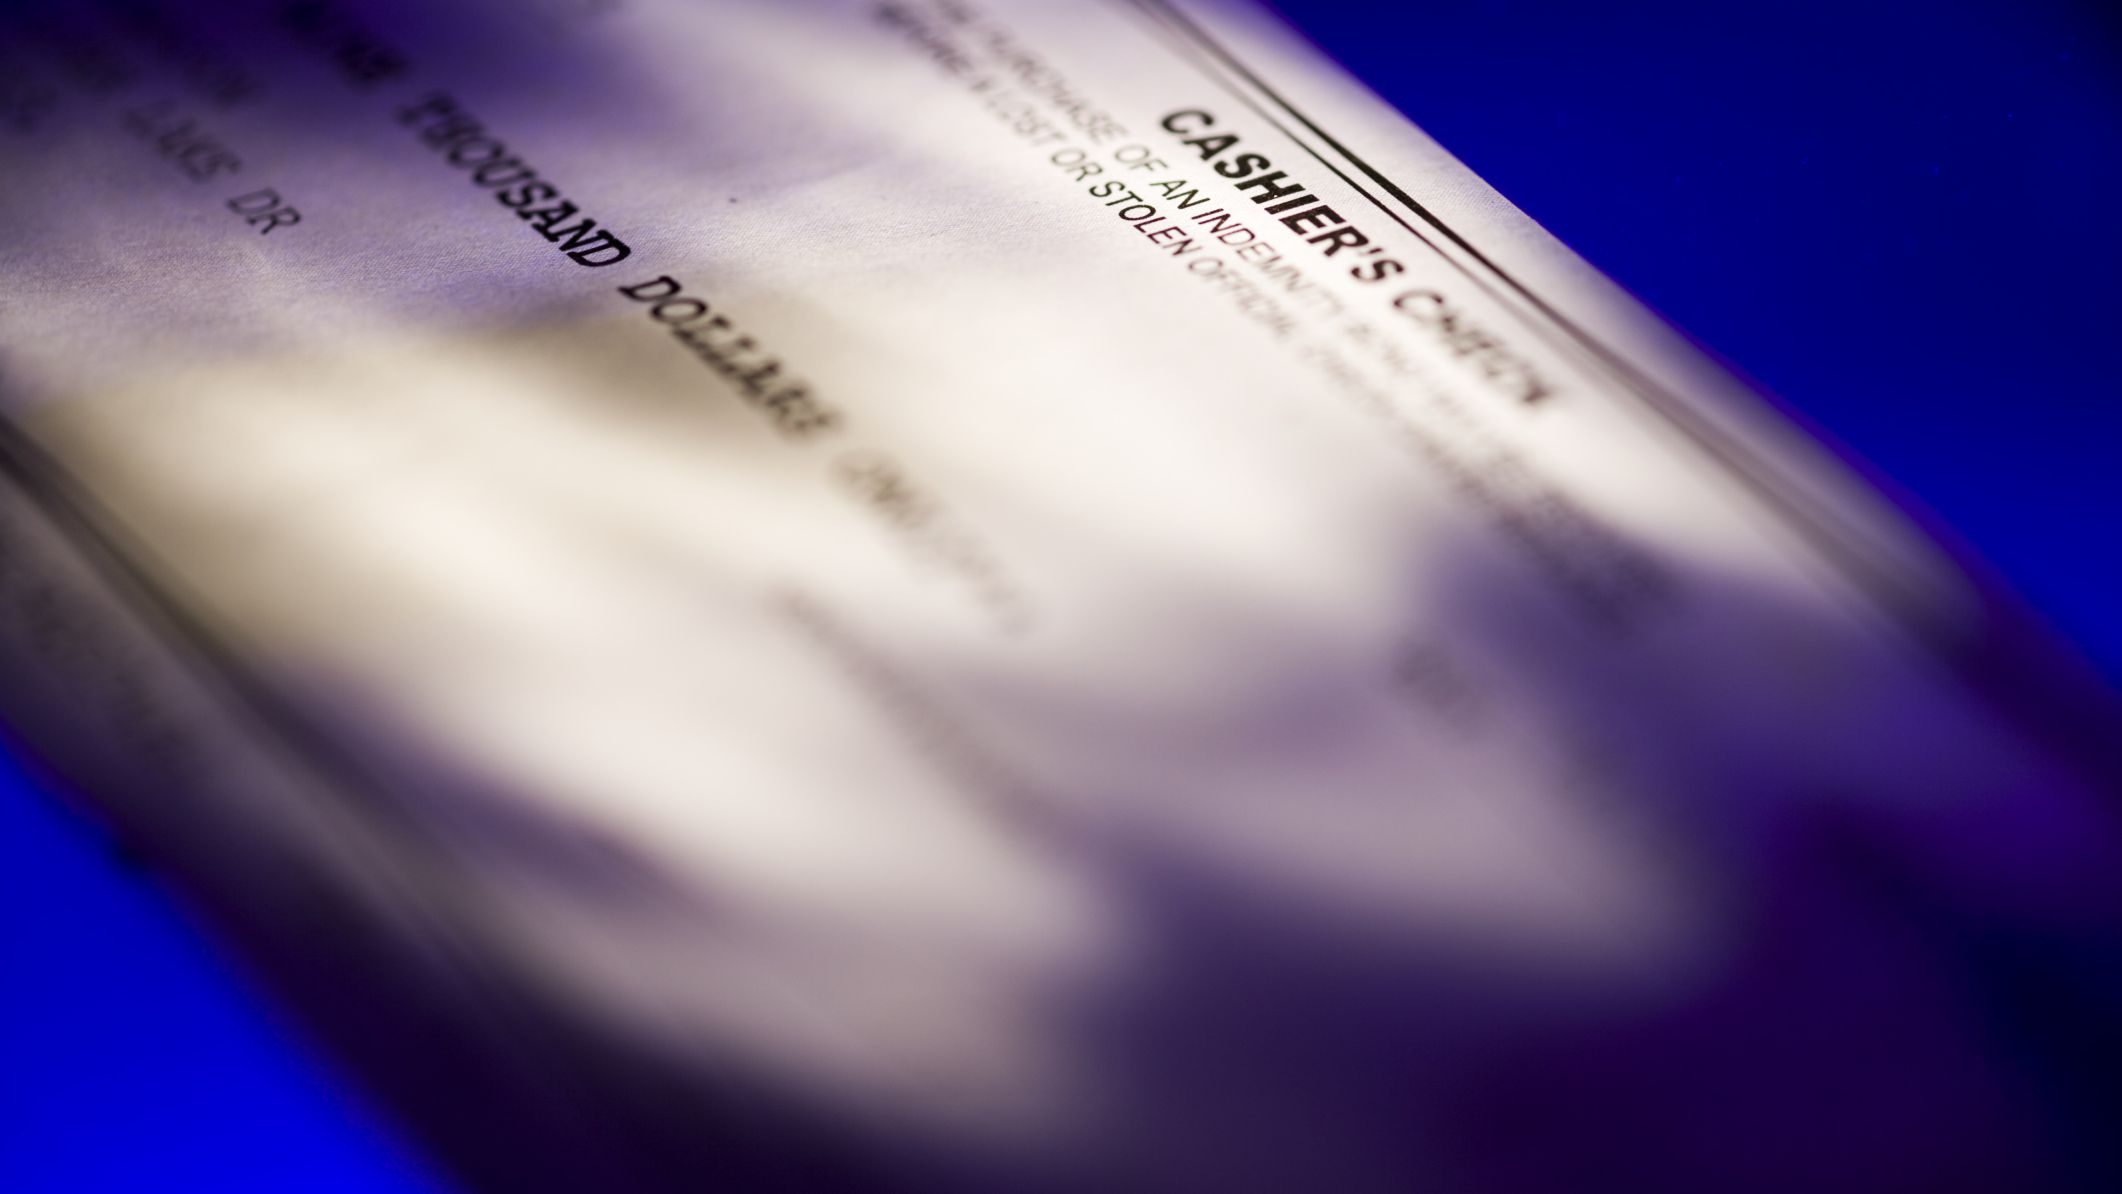 Cashier's Checks: How They Work, Fees, and Safety